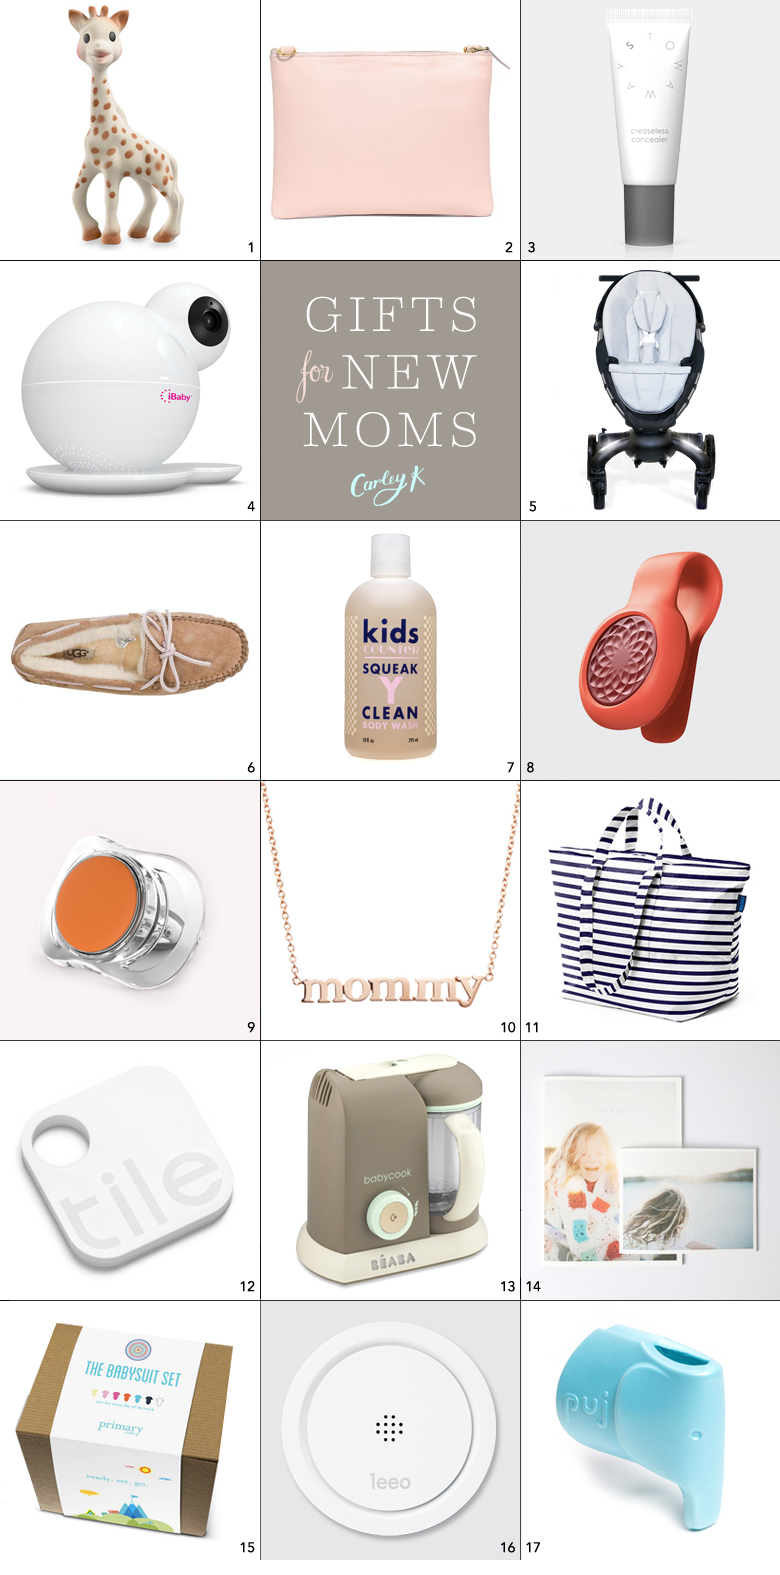 gifts for new moms carley k